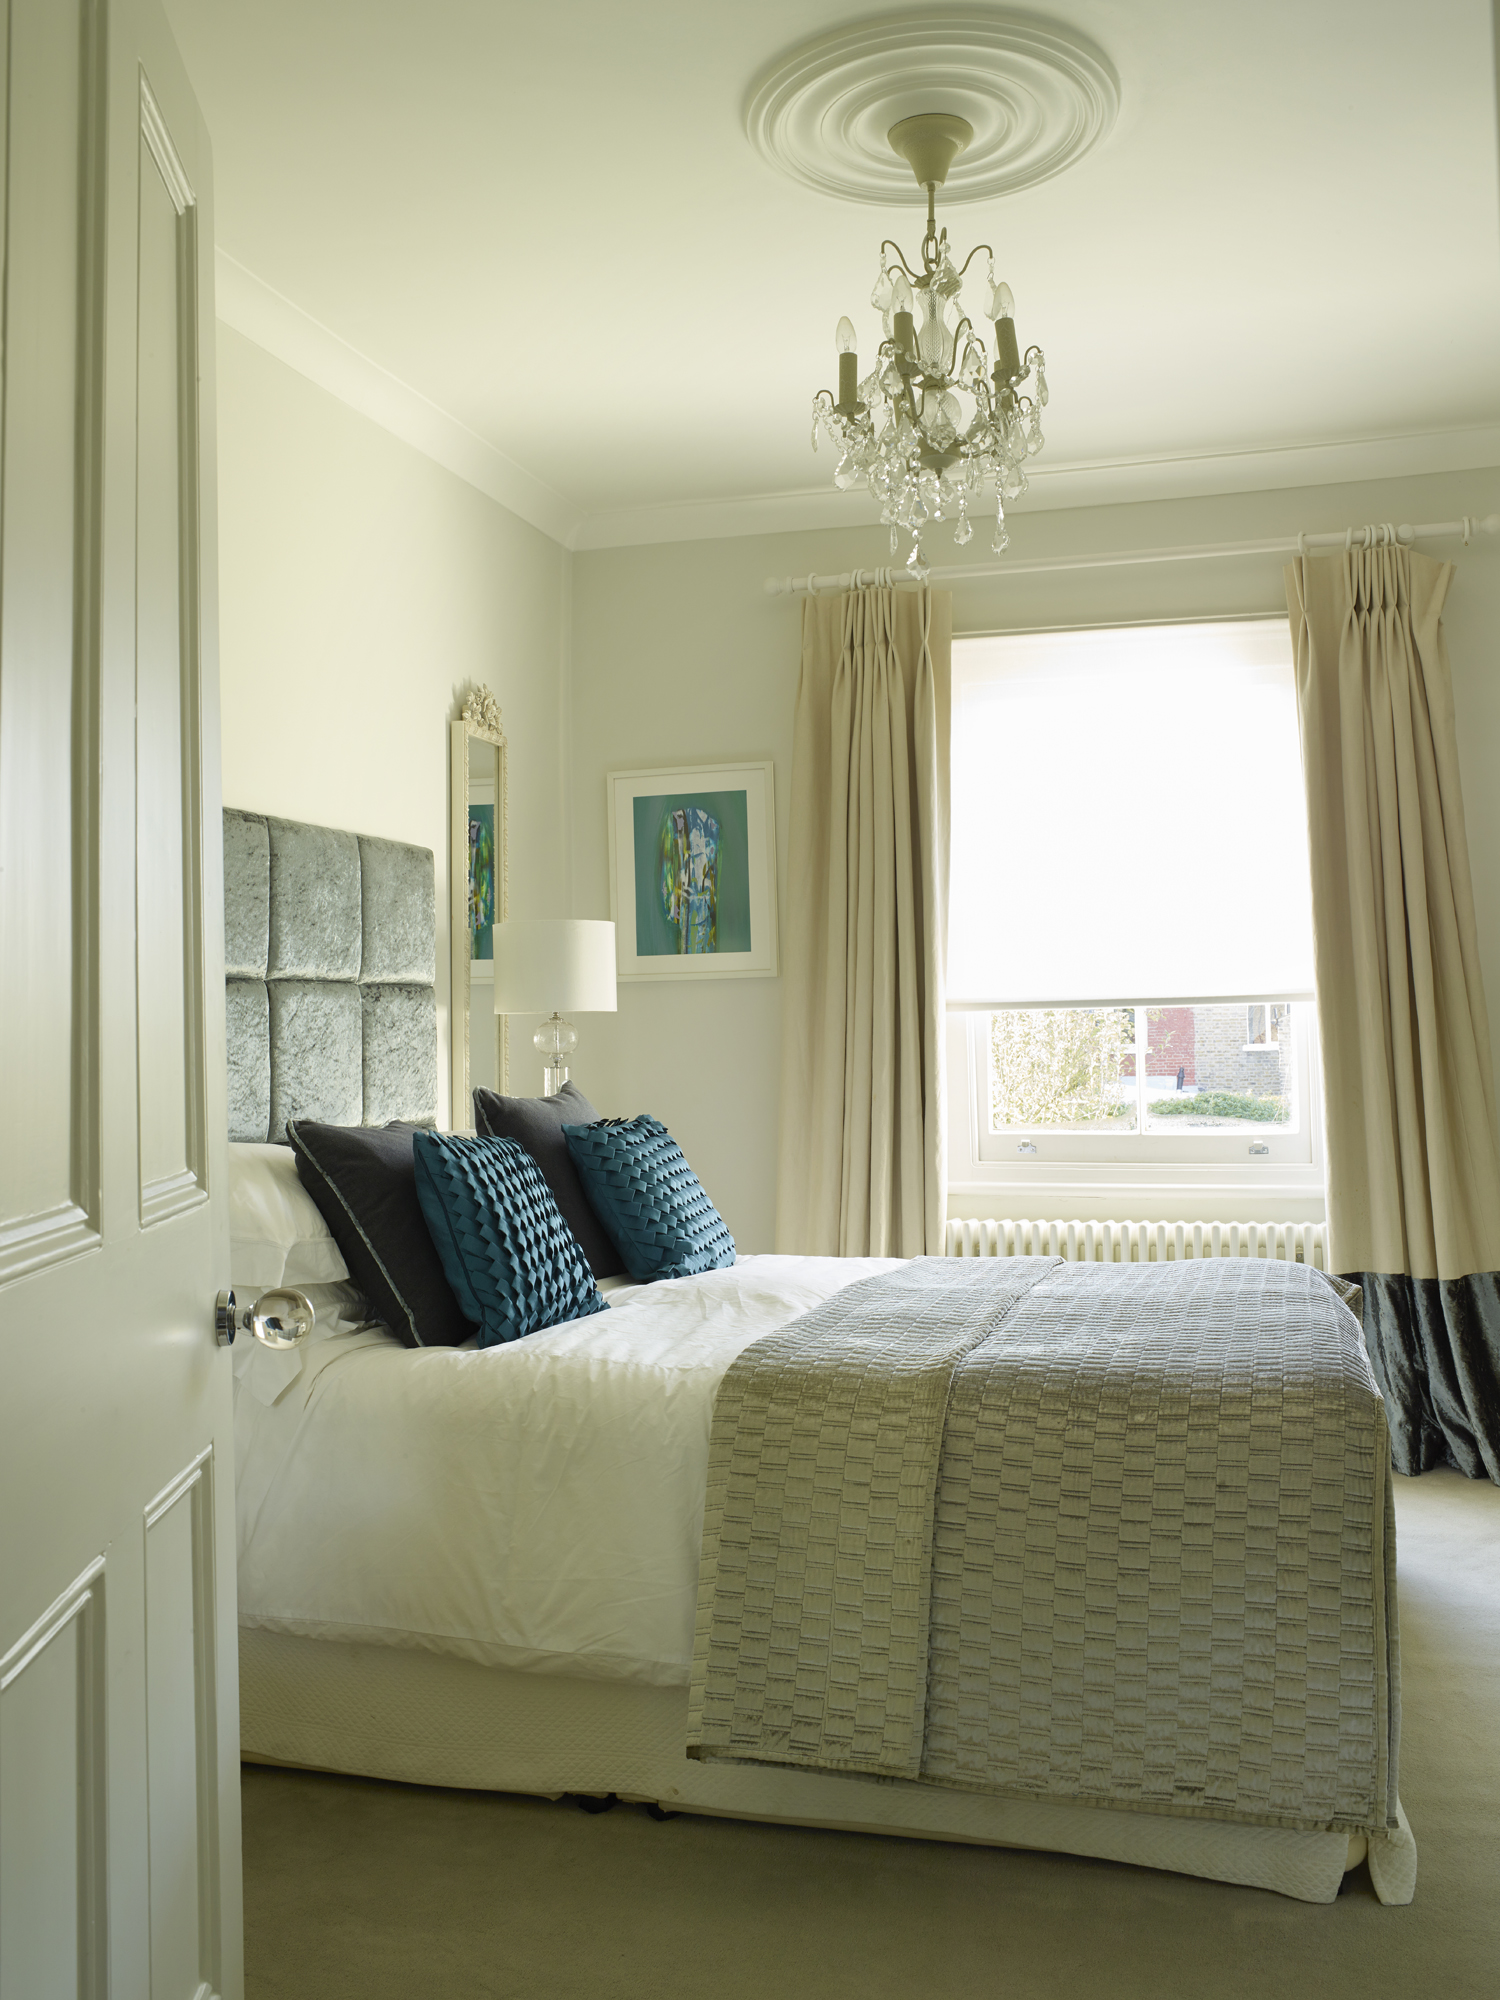 Bedroom, Crouch End, London, master bed, by Caz Myers